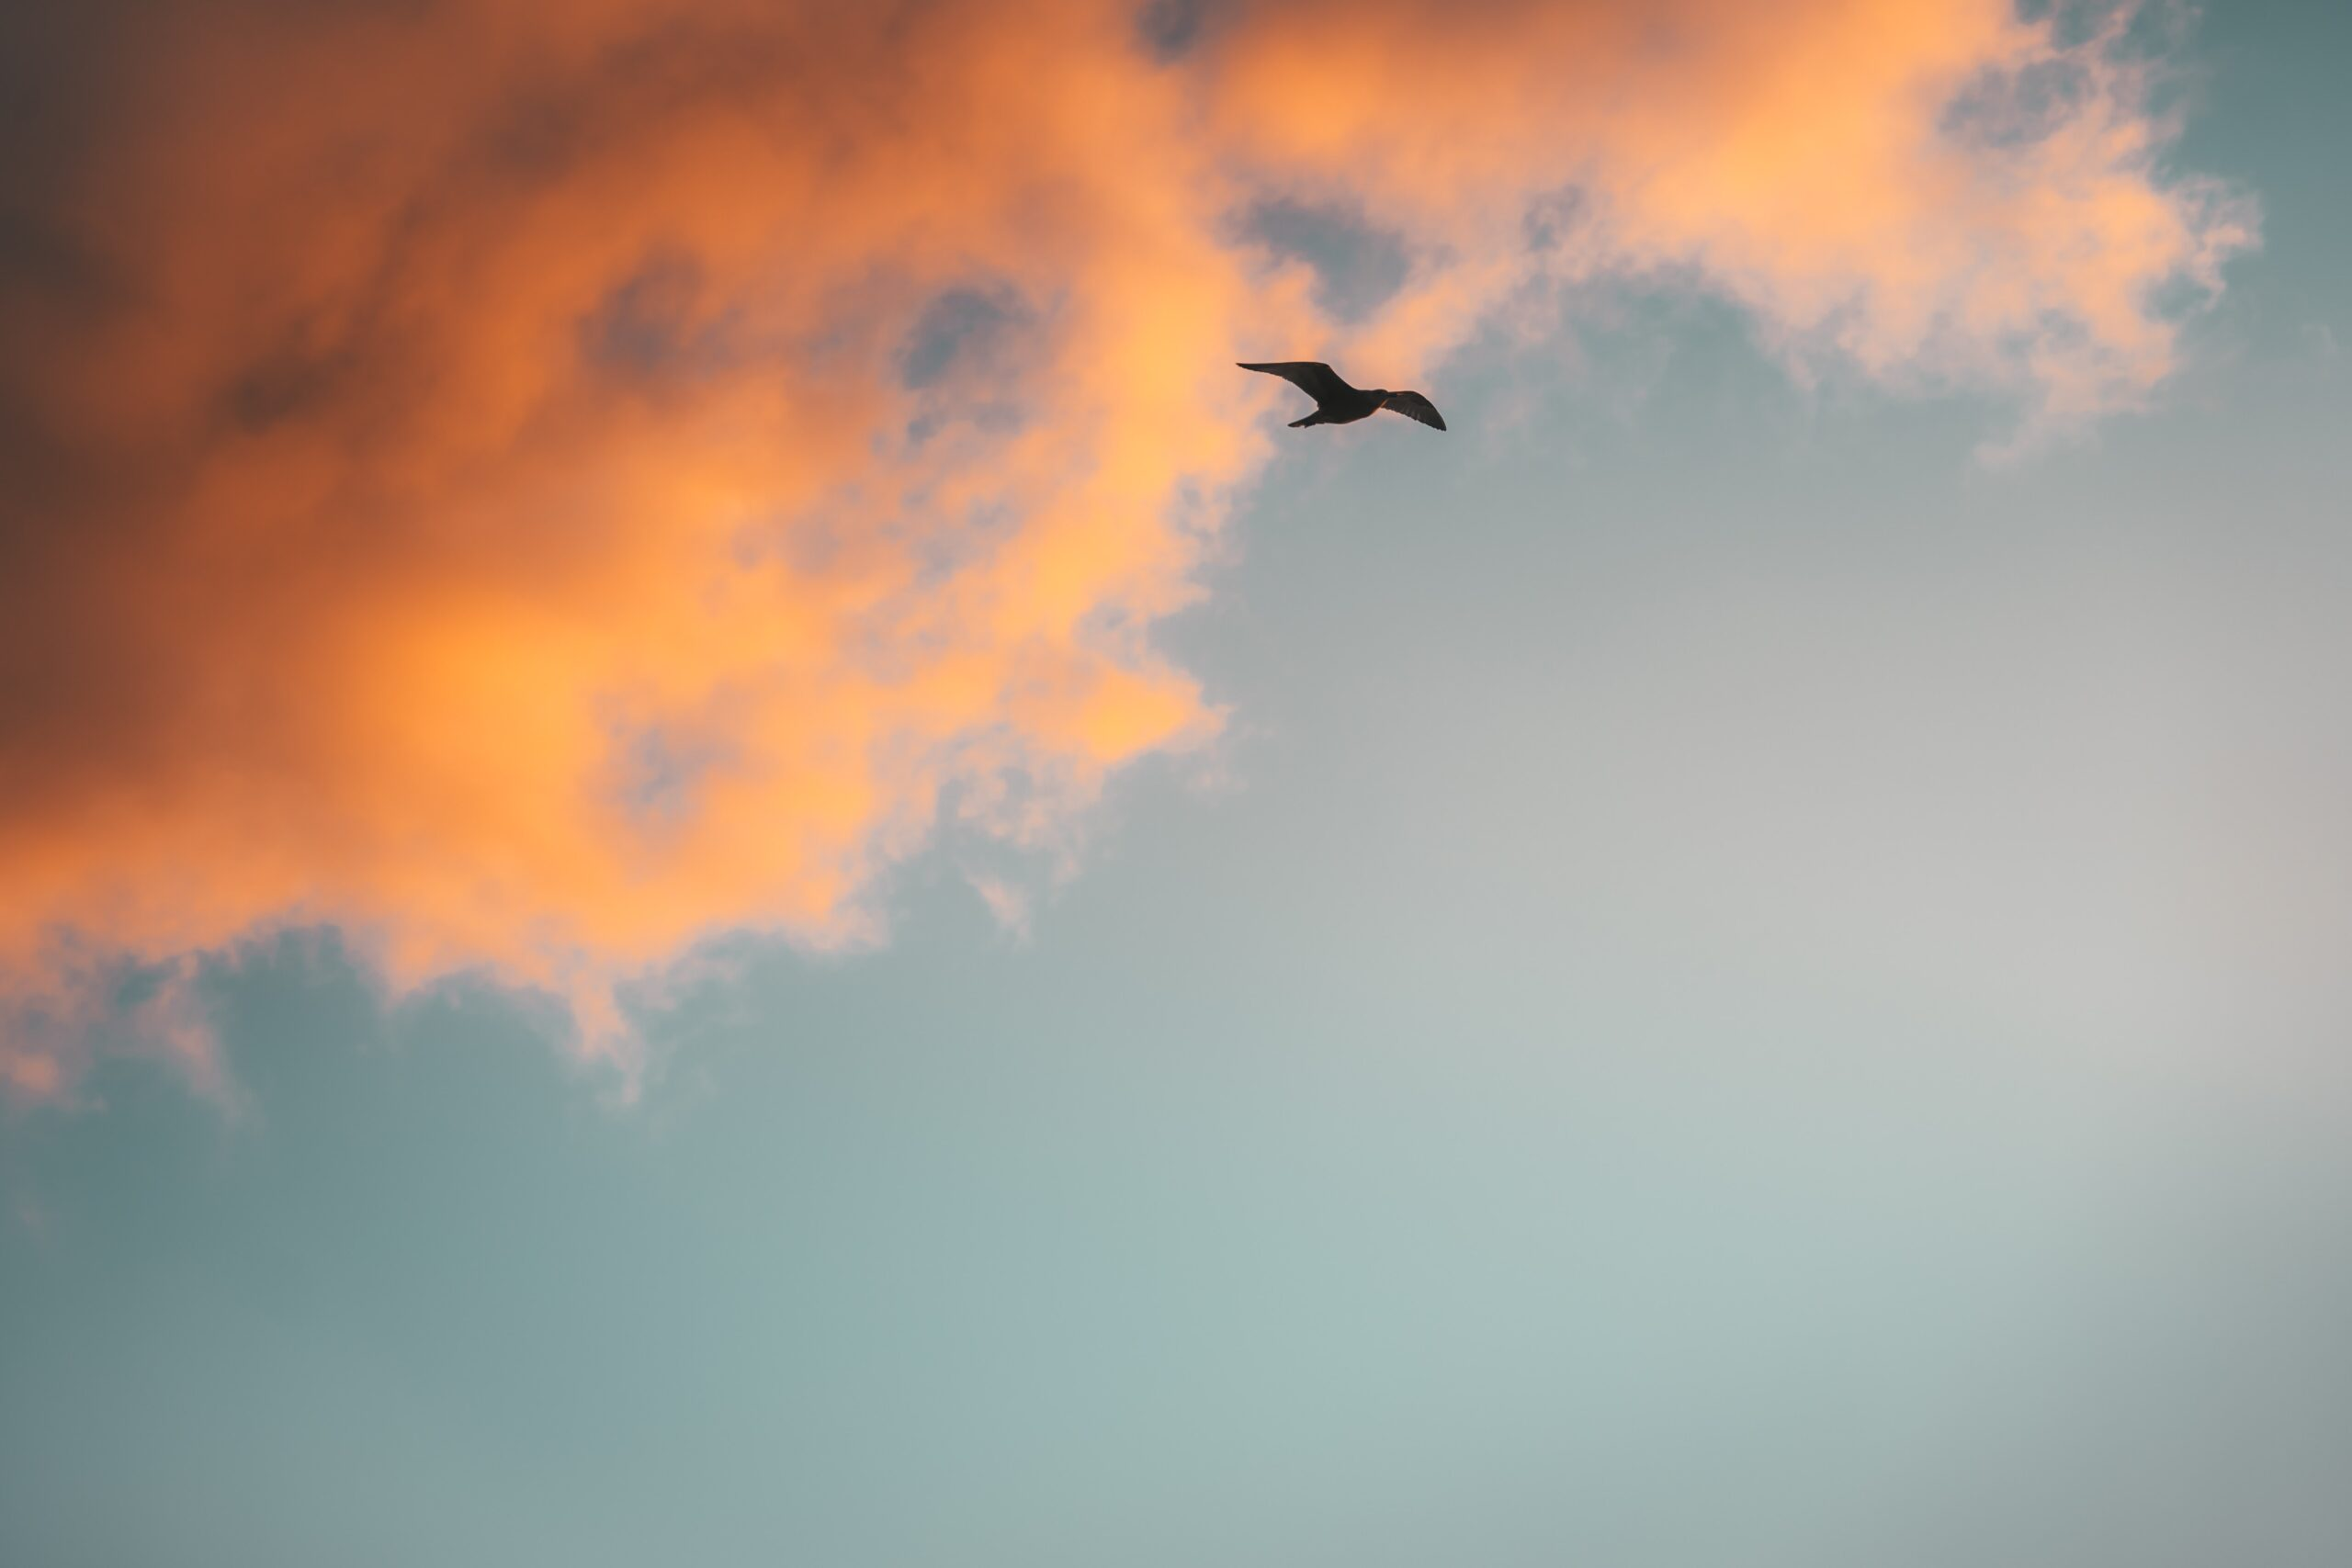 jason-pischke-Sun splashed clouds orange blue sky with Sea Gull soaring-unsplash